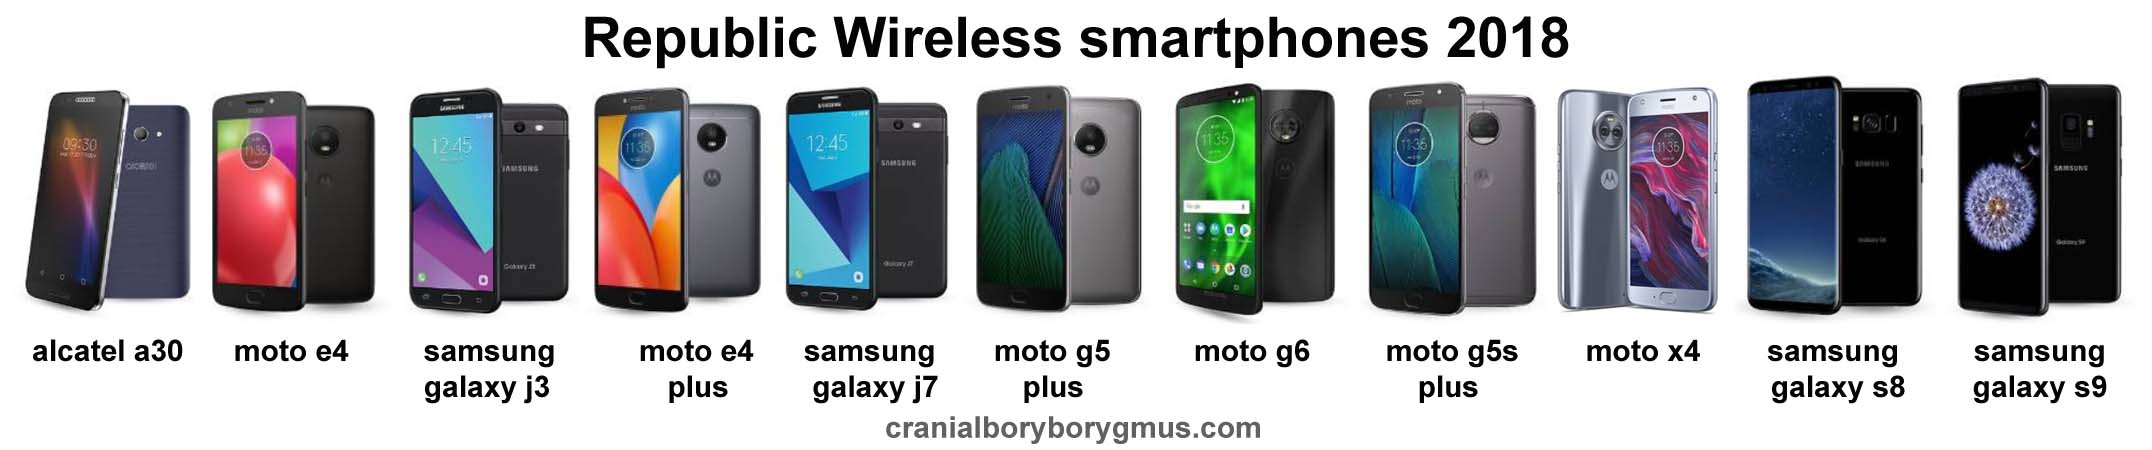 new phone options at Republic Wireless 2017